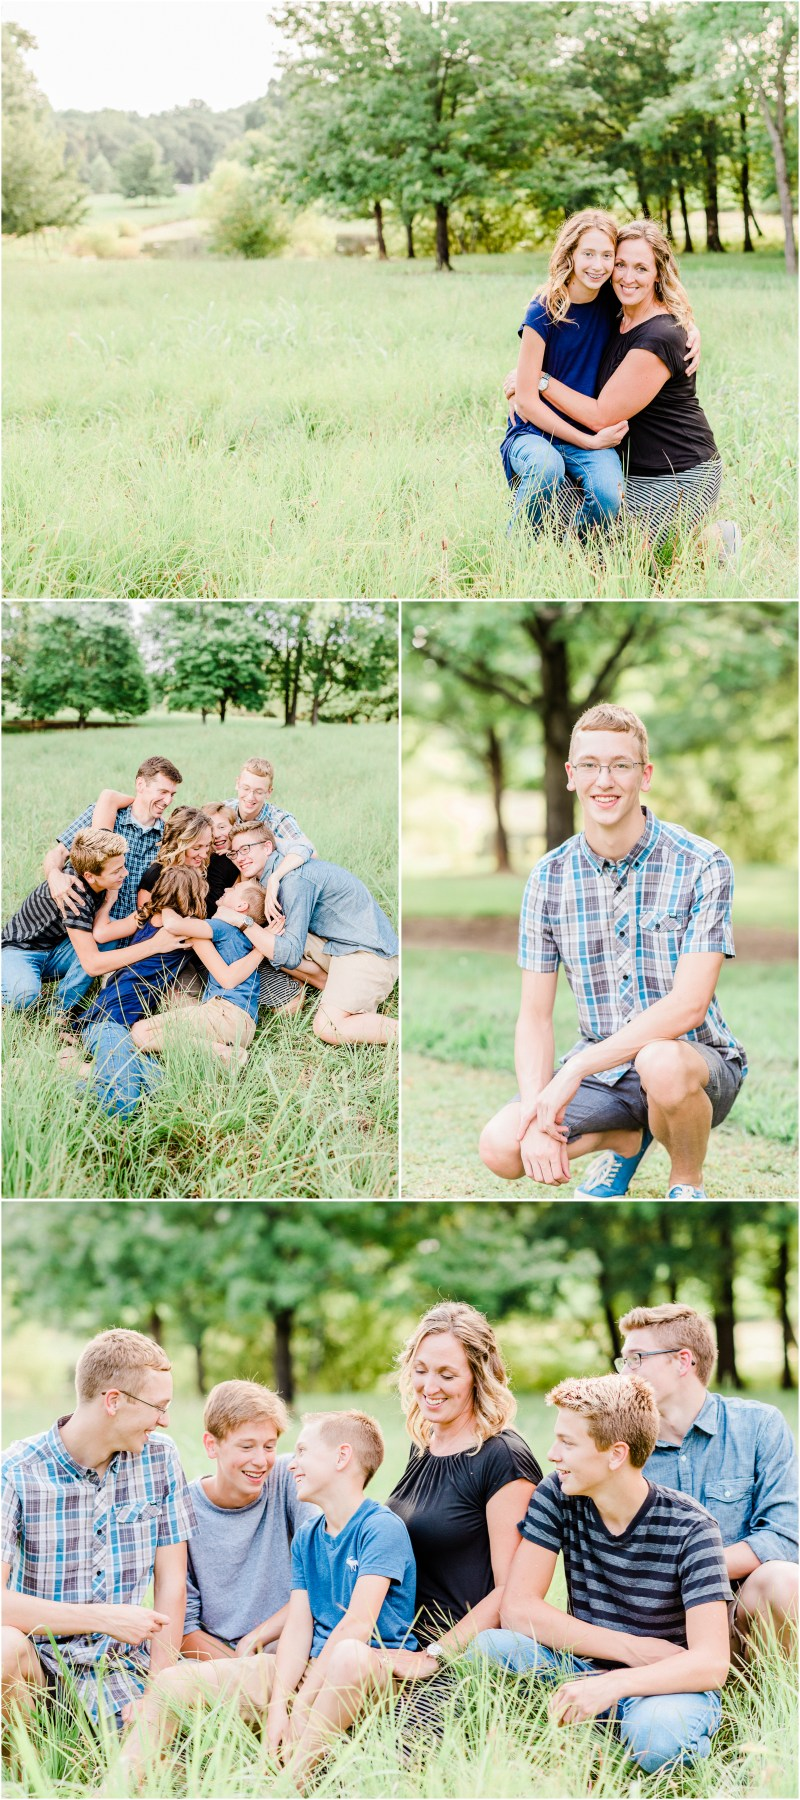 Milliken Arboretum Family Session in Spartanburg, SC